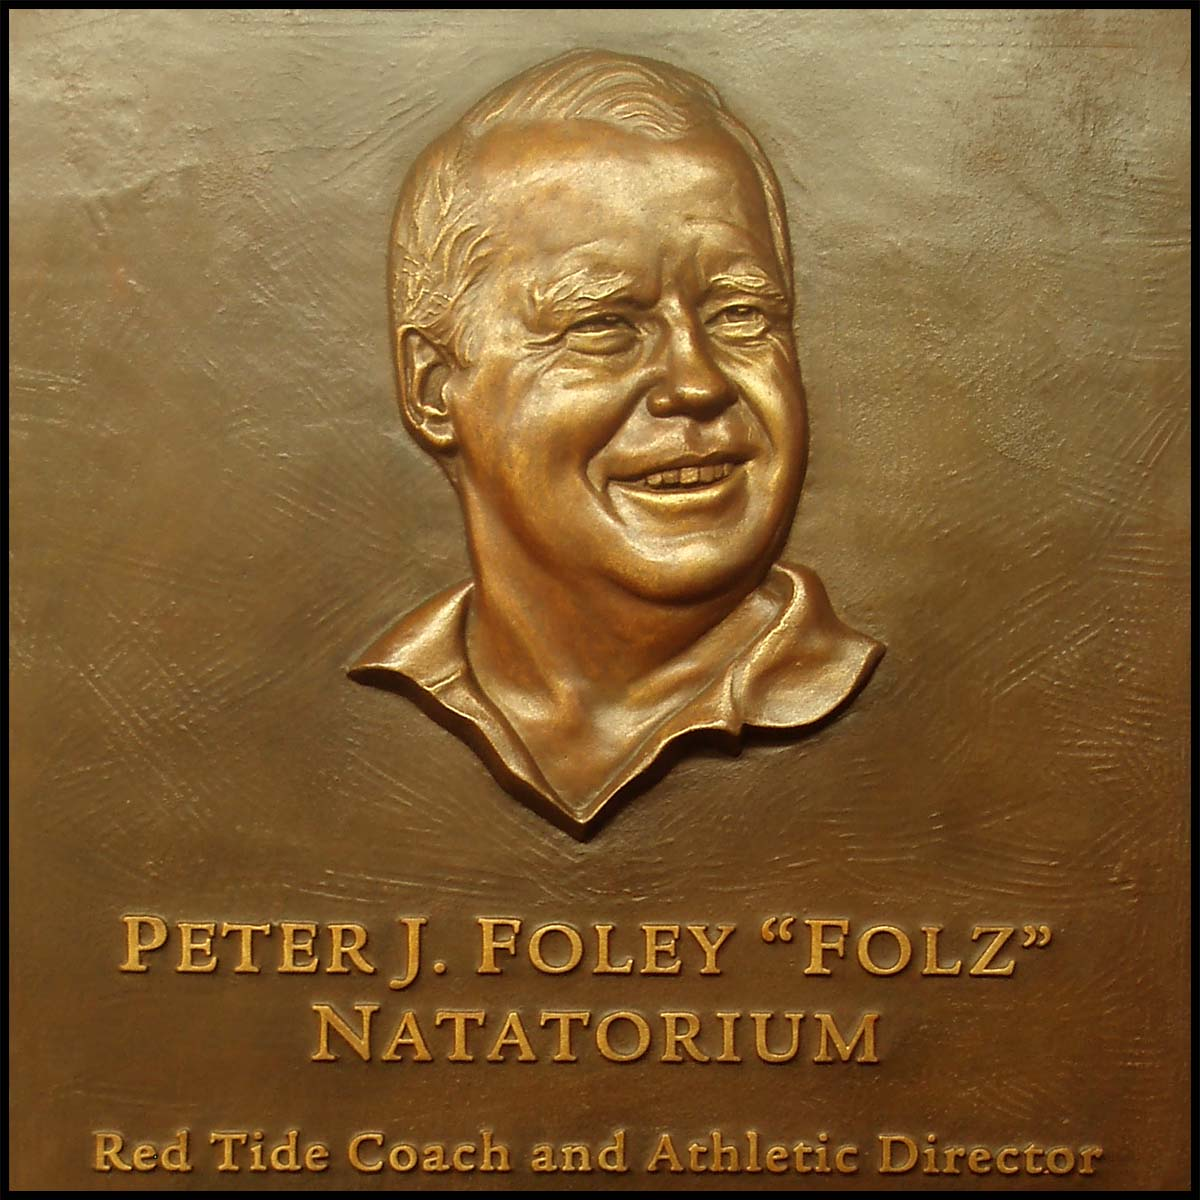 photo of bronze plaque with relief sculpture of Peter Foley on tiled wall